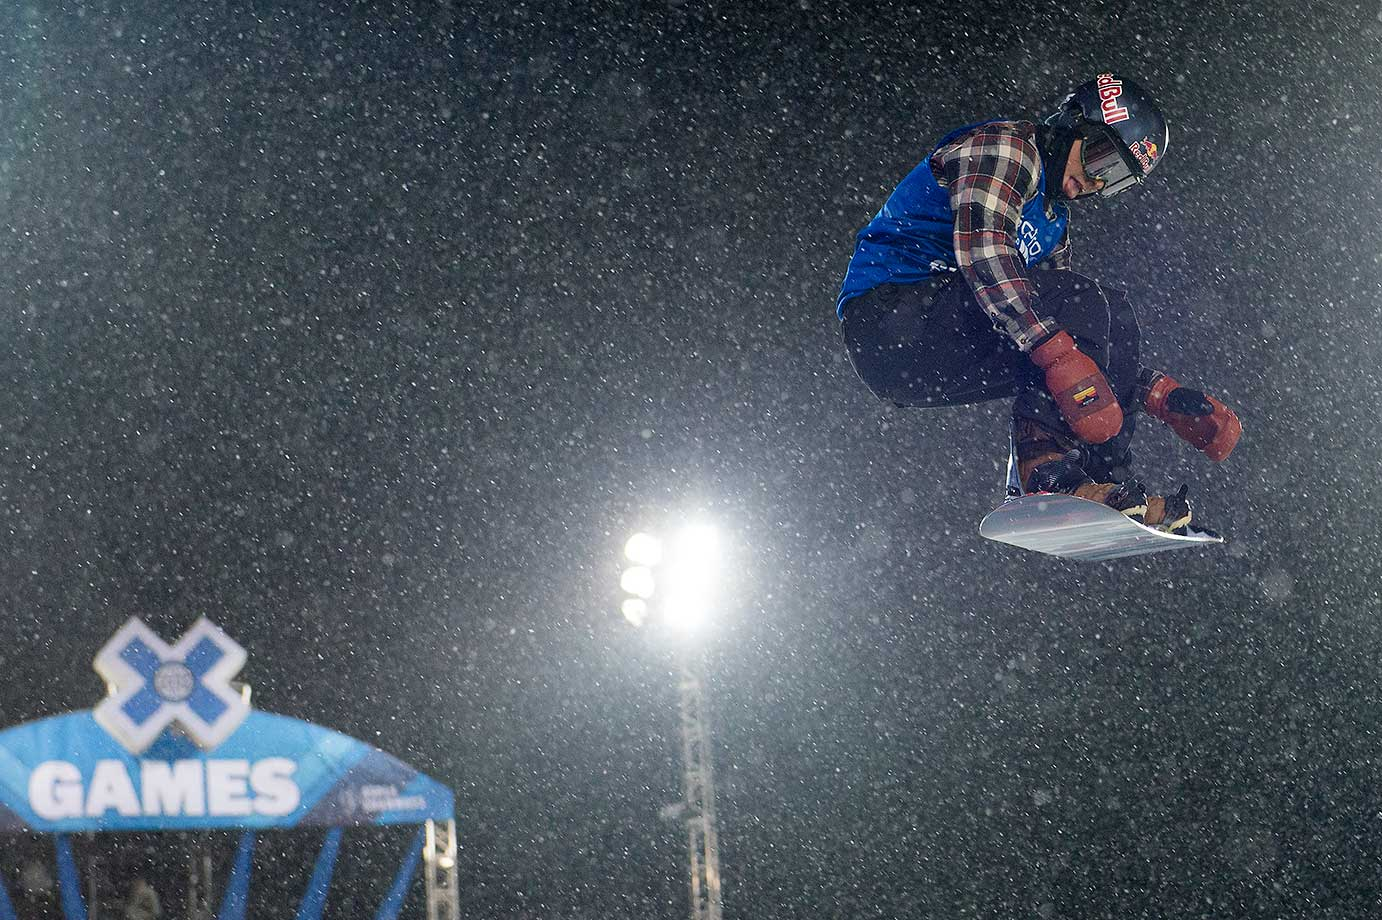 Ben Ferguson competes during his first run of the snowboard halfpipe at Winter X Games 2016 Aspen at Buttermilk Mountain. Ferguson won the silver medal after the event was canceled after one run because of snow.